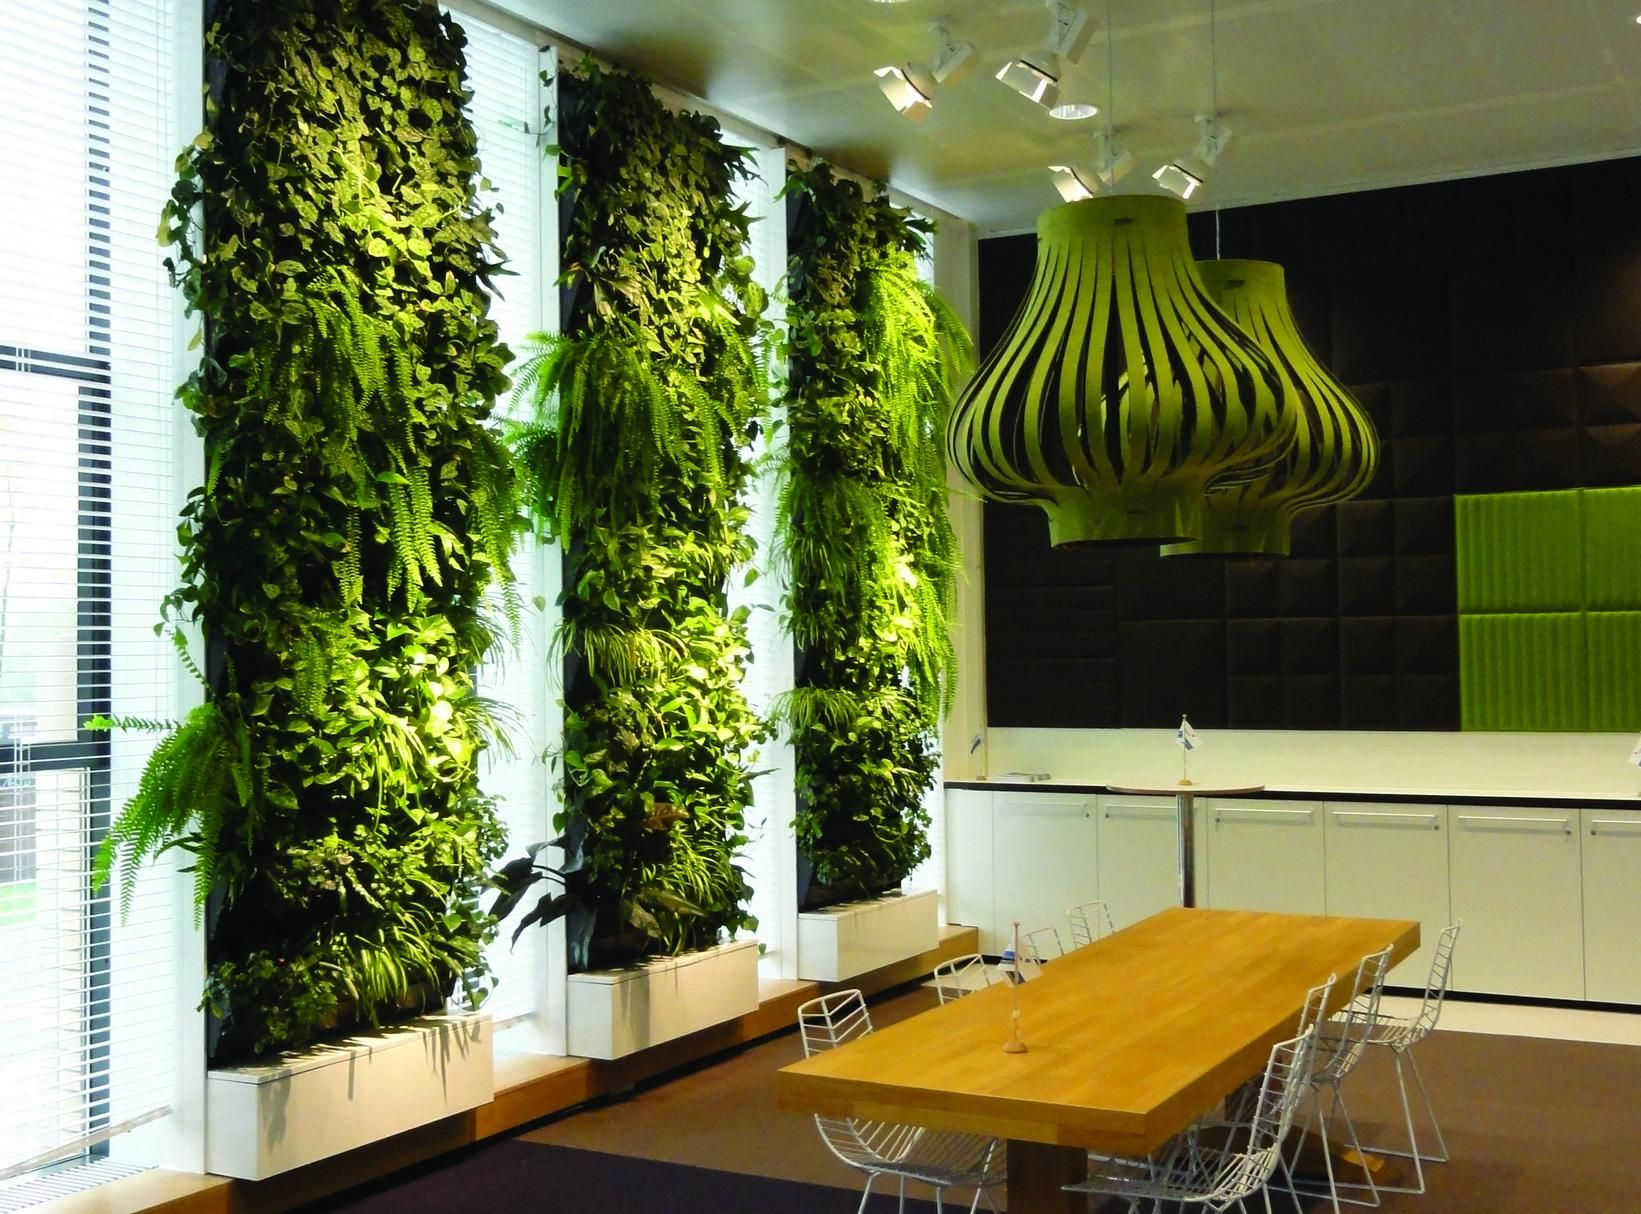 Evergreen direct english company that sells all kinds of bespoke artificial greenery for green walls shrugs etc